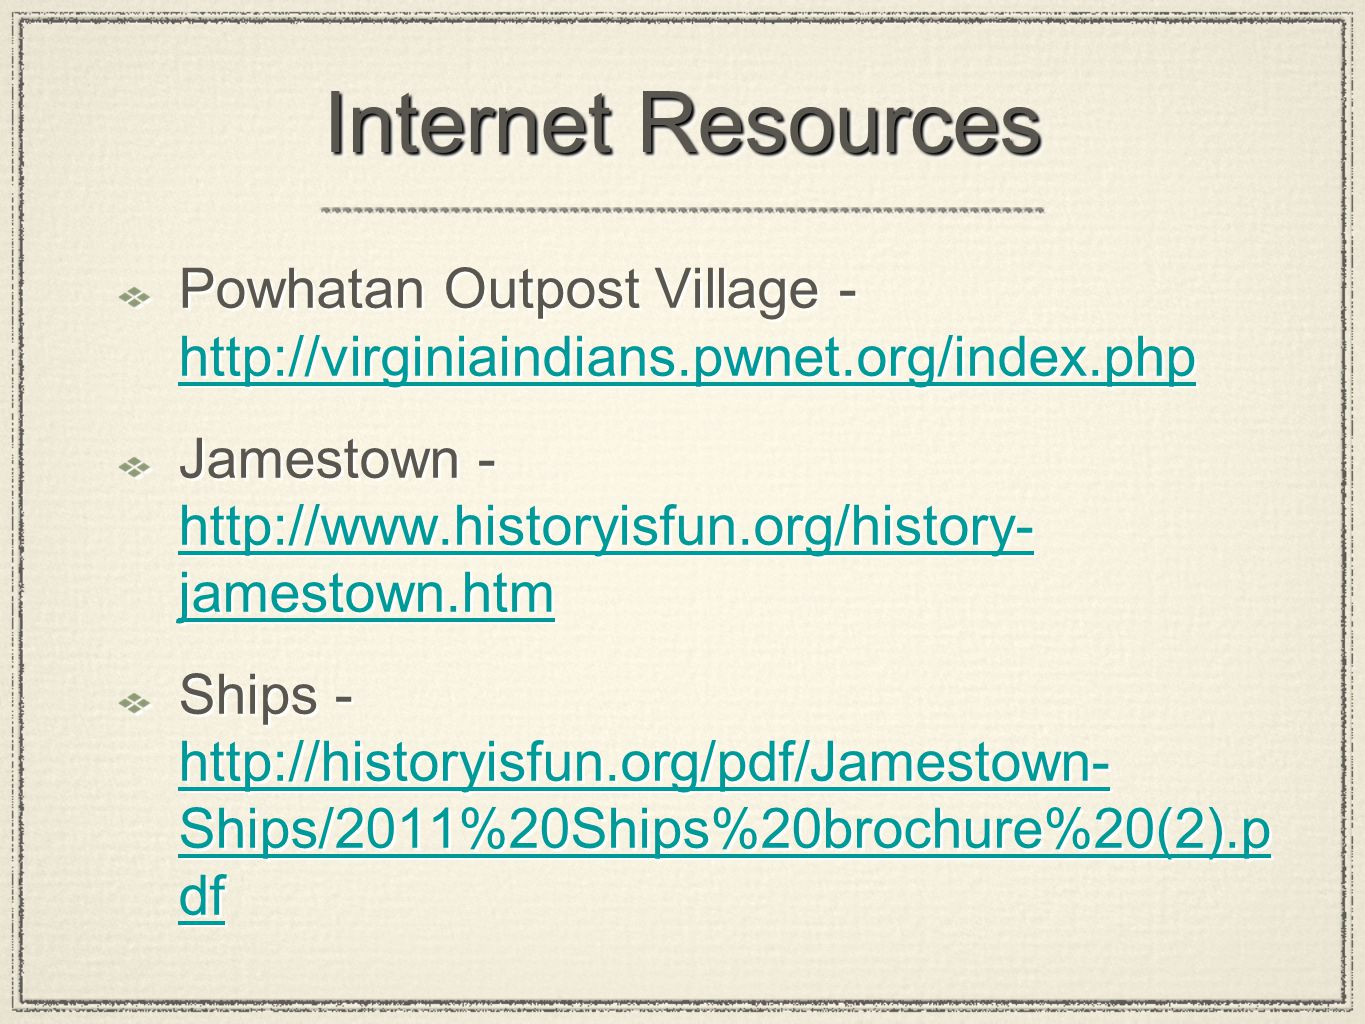 Internet Resources Powhatan Outpost Village - http://virginiaindians.pwnet.org/index.php.